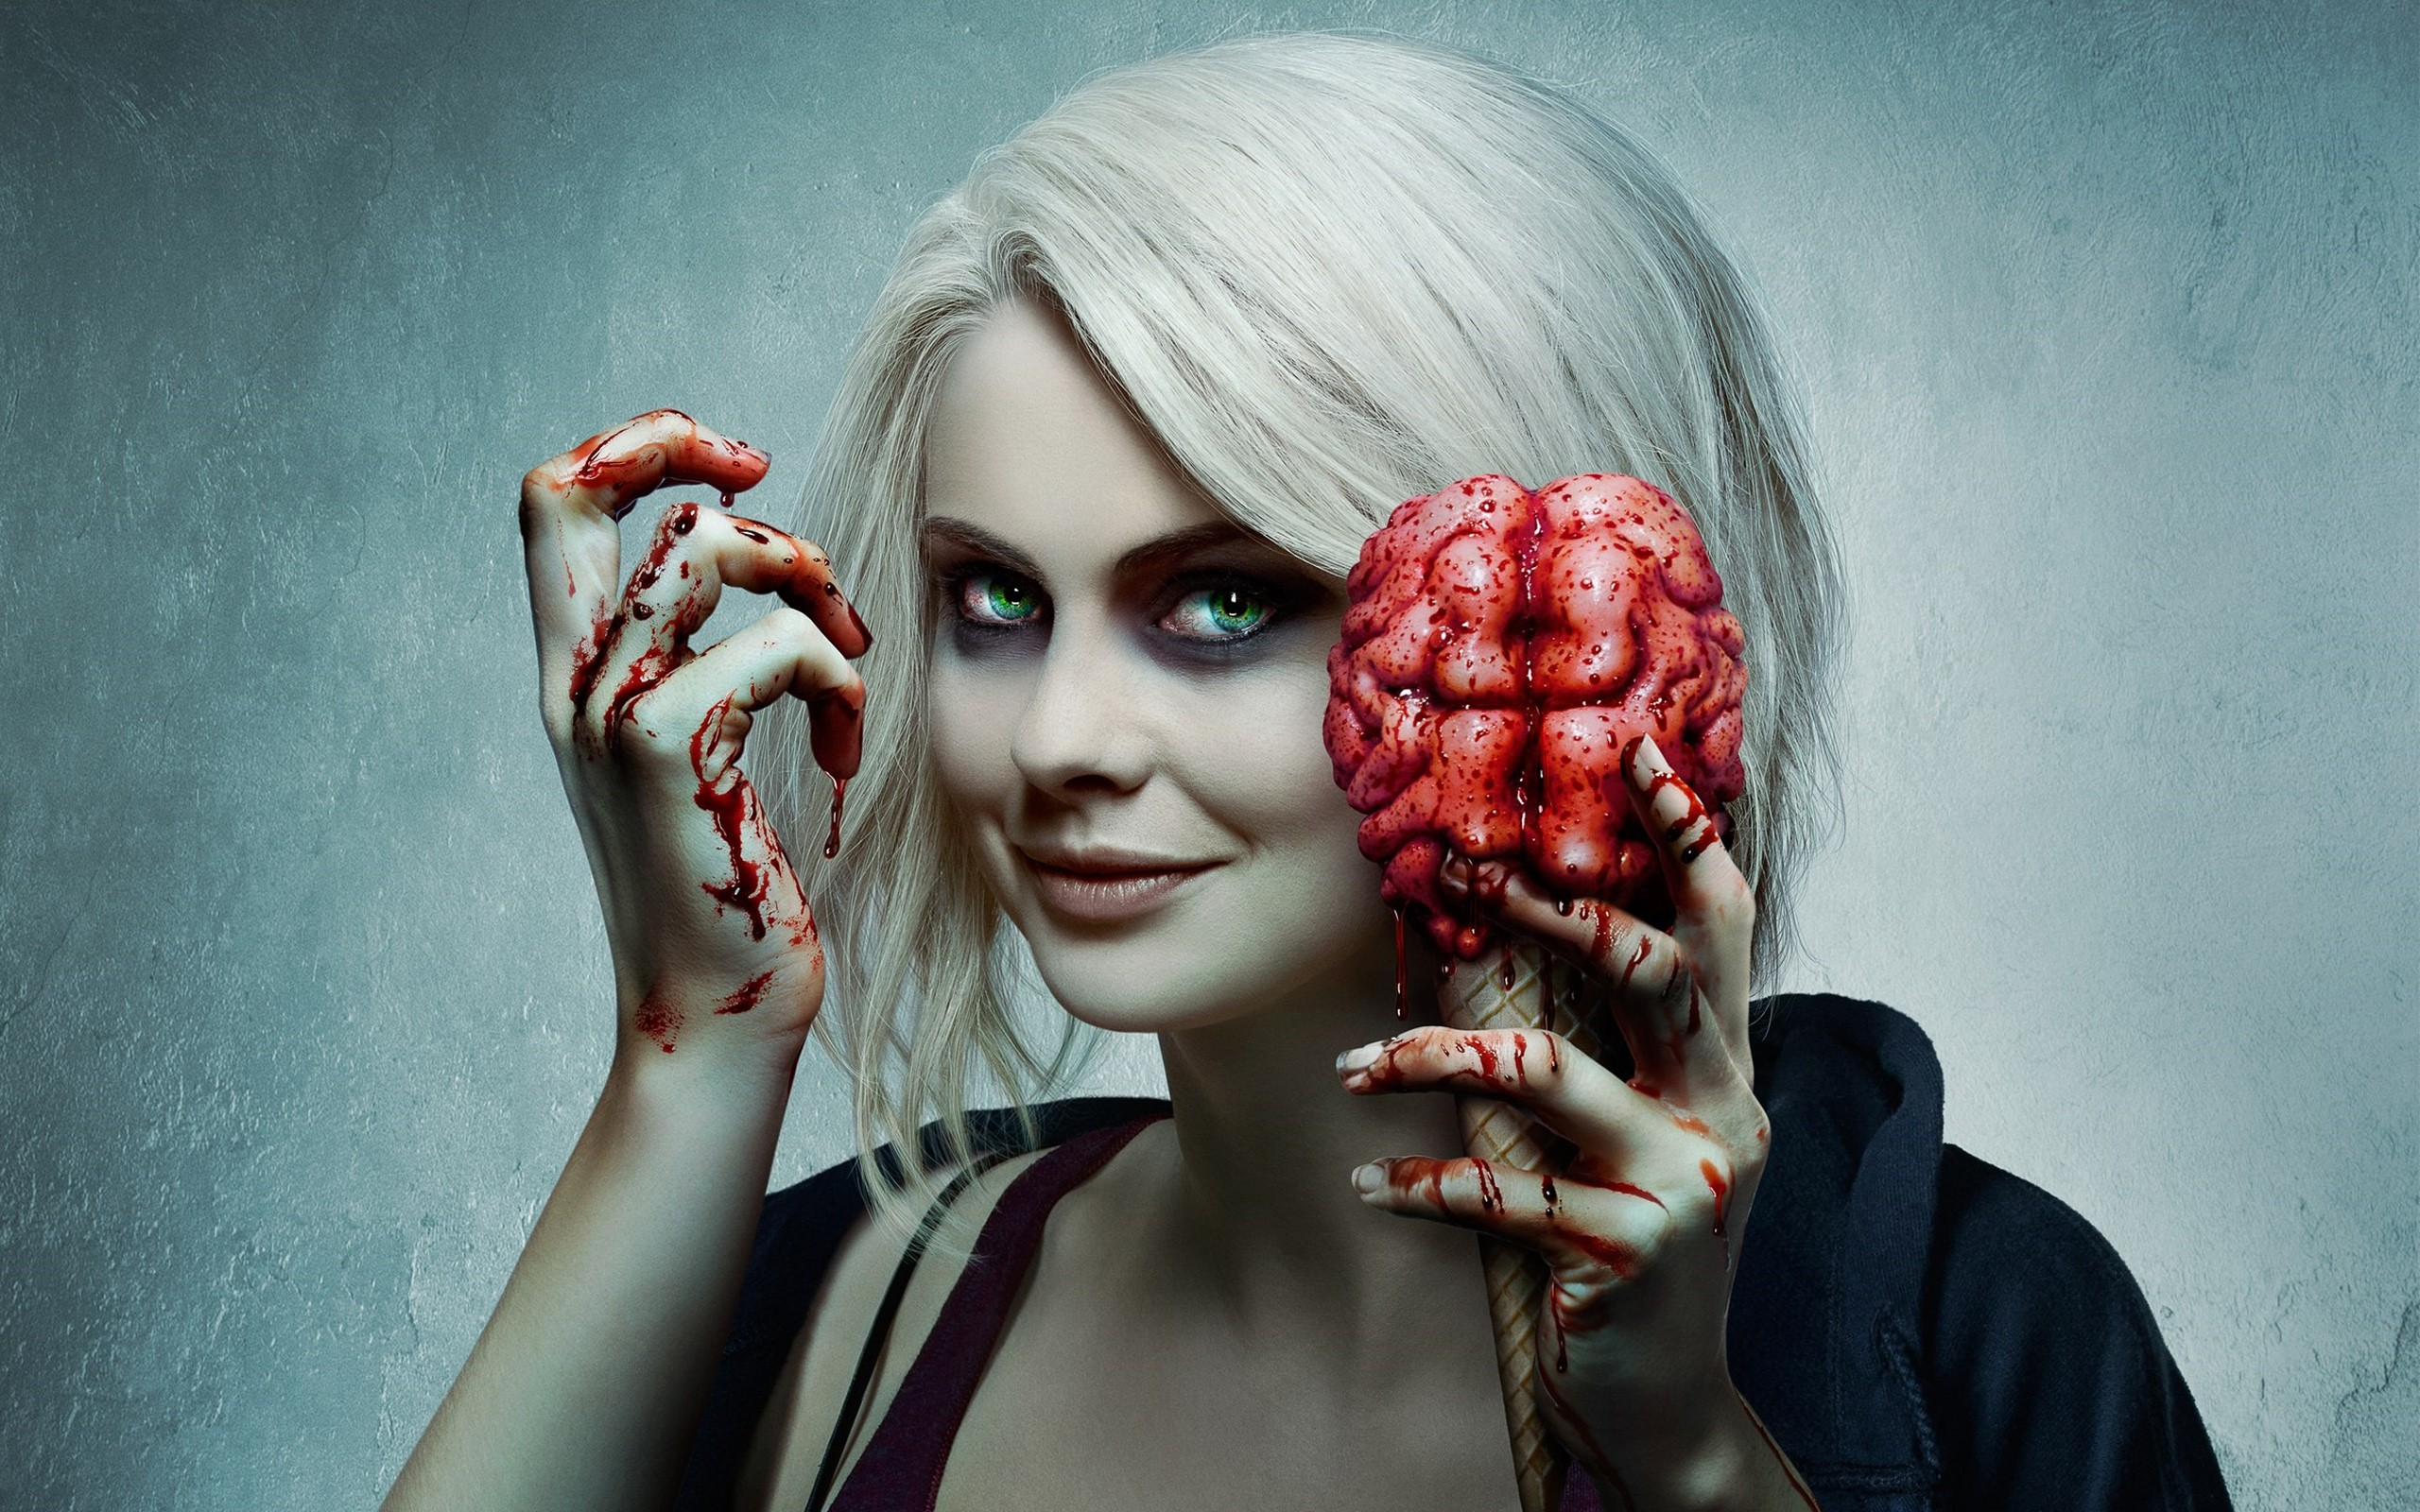 Wallpaper Desktop Girl Falling Izombie Season 2 Hd Tv Shows 4k Wallpapers Images